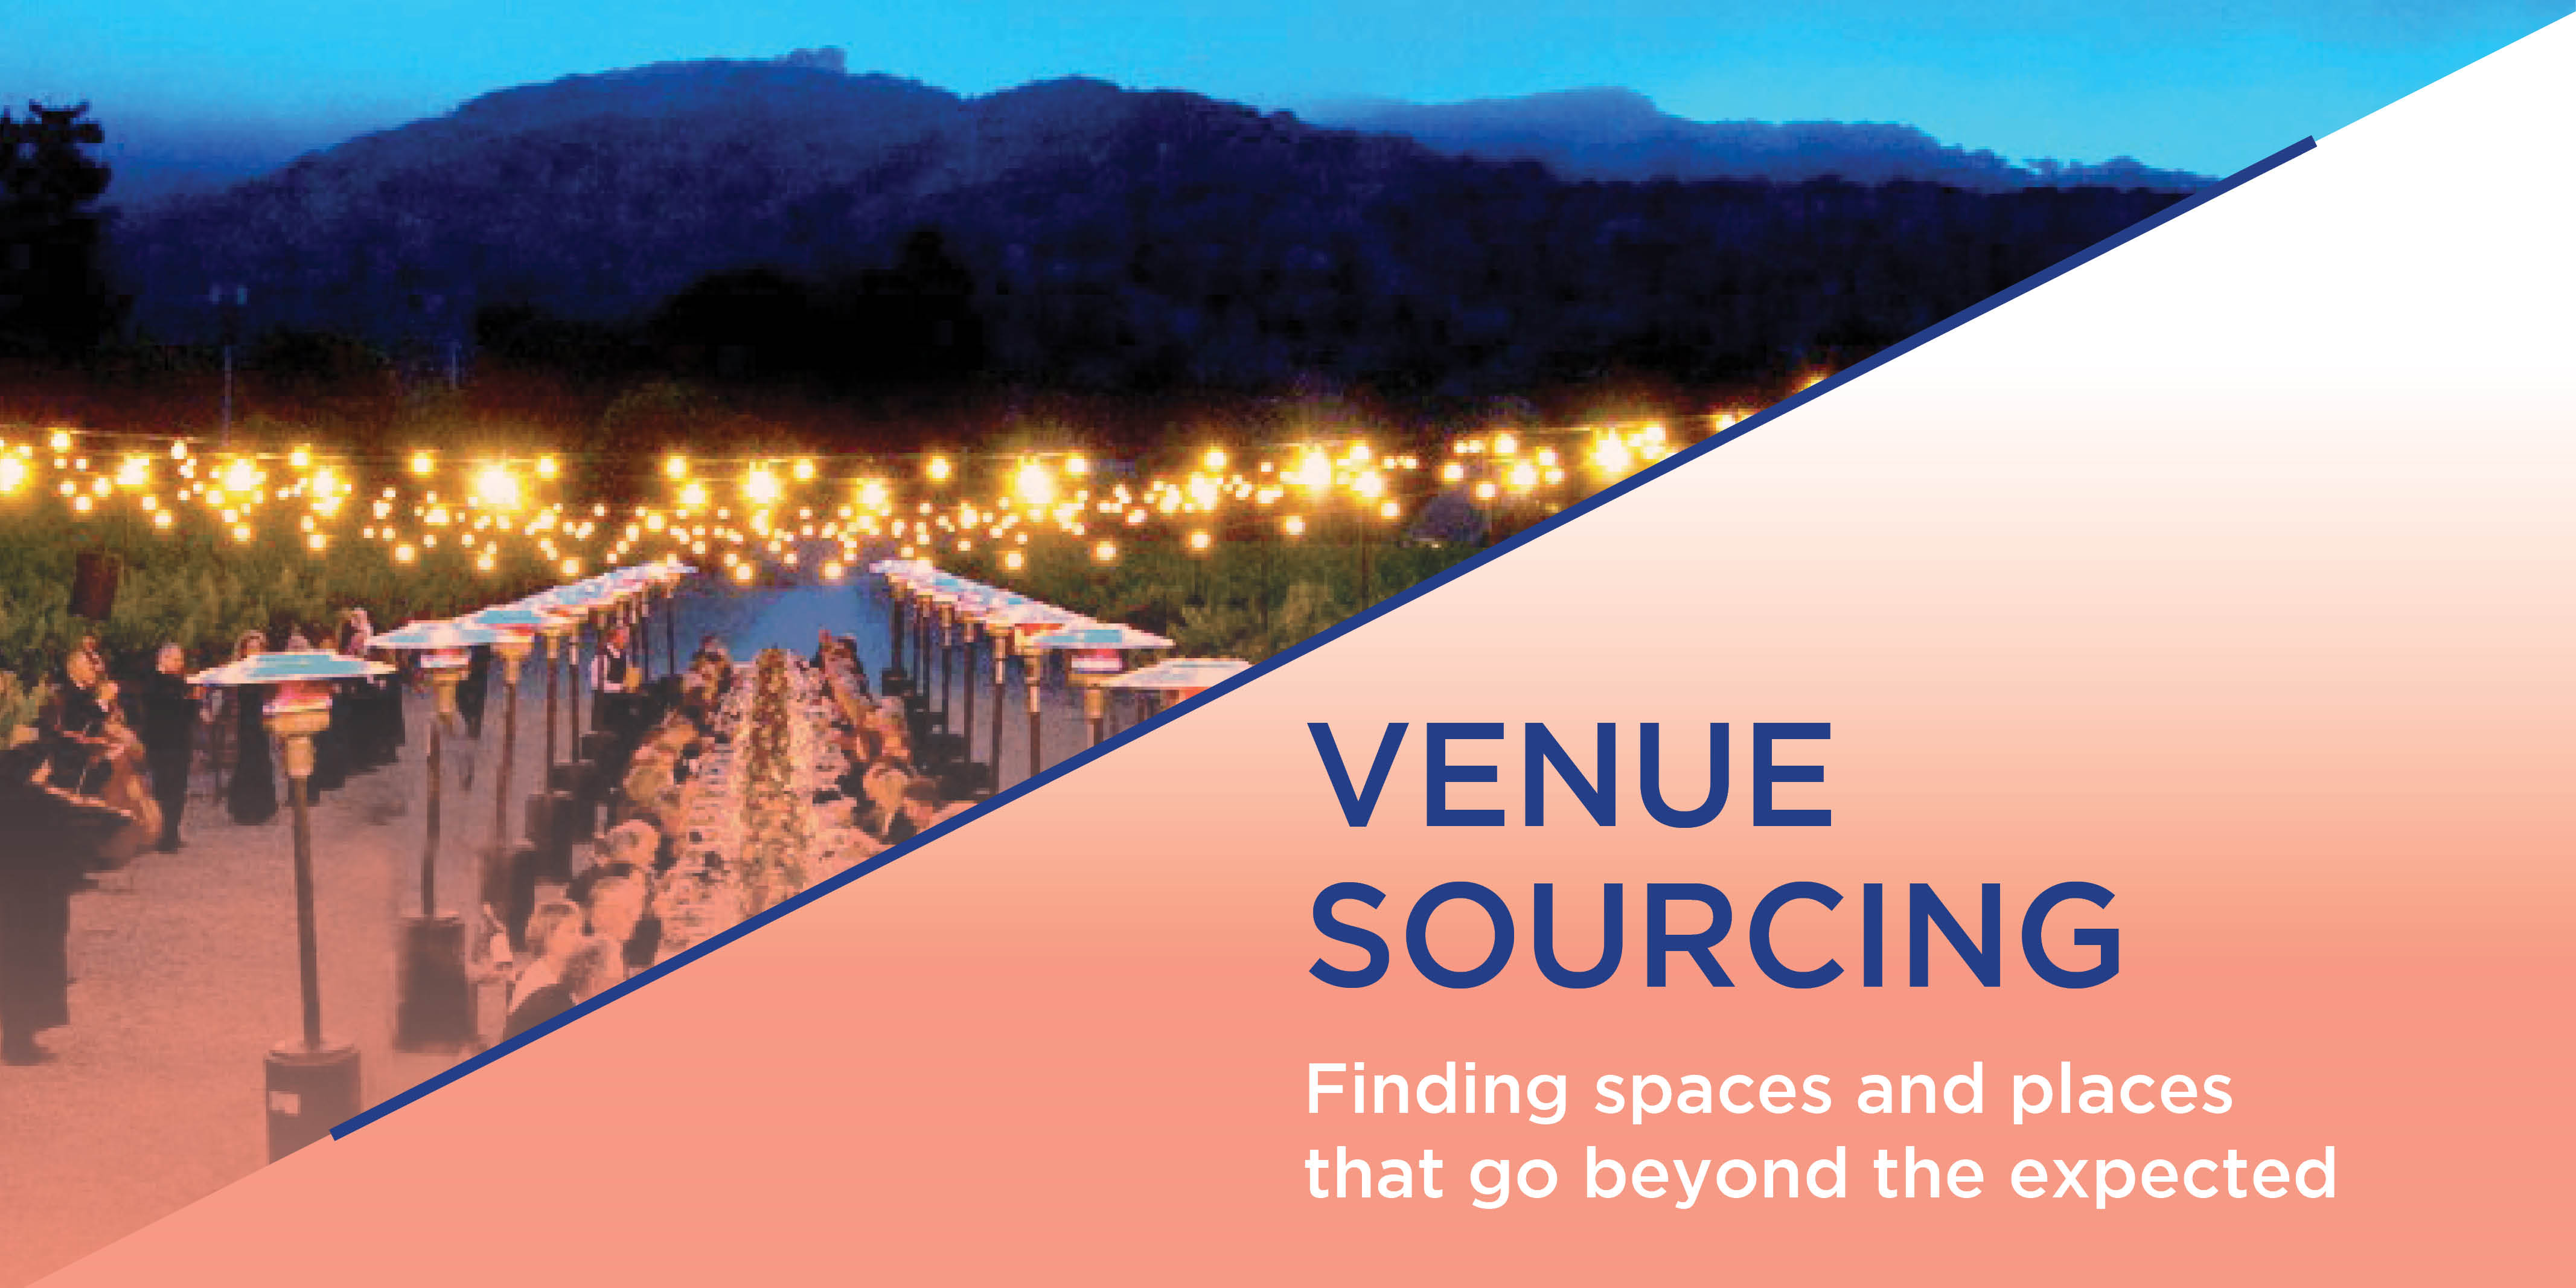 Venue sourcing service highlight | BCD Meetings & Events